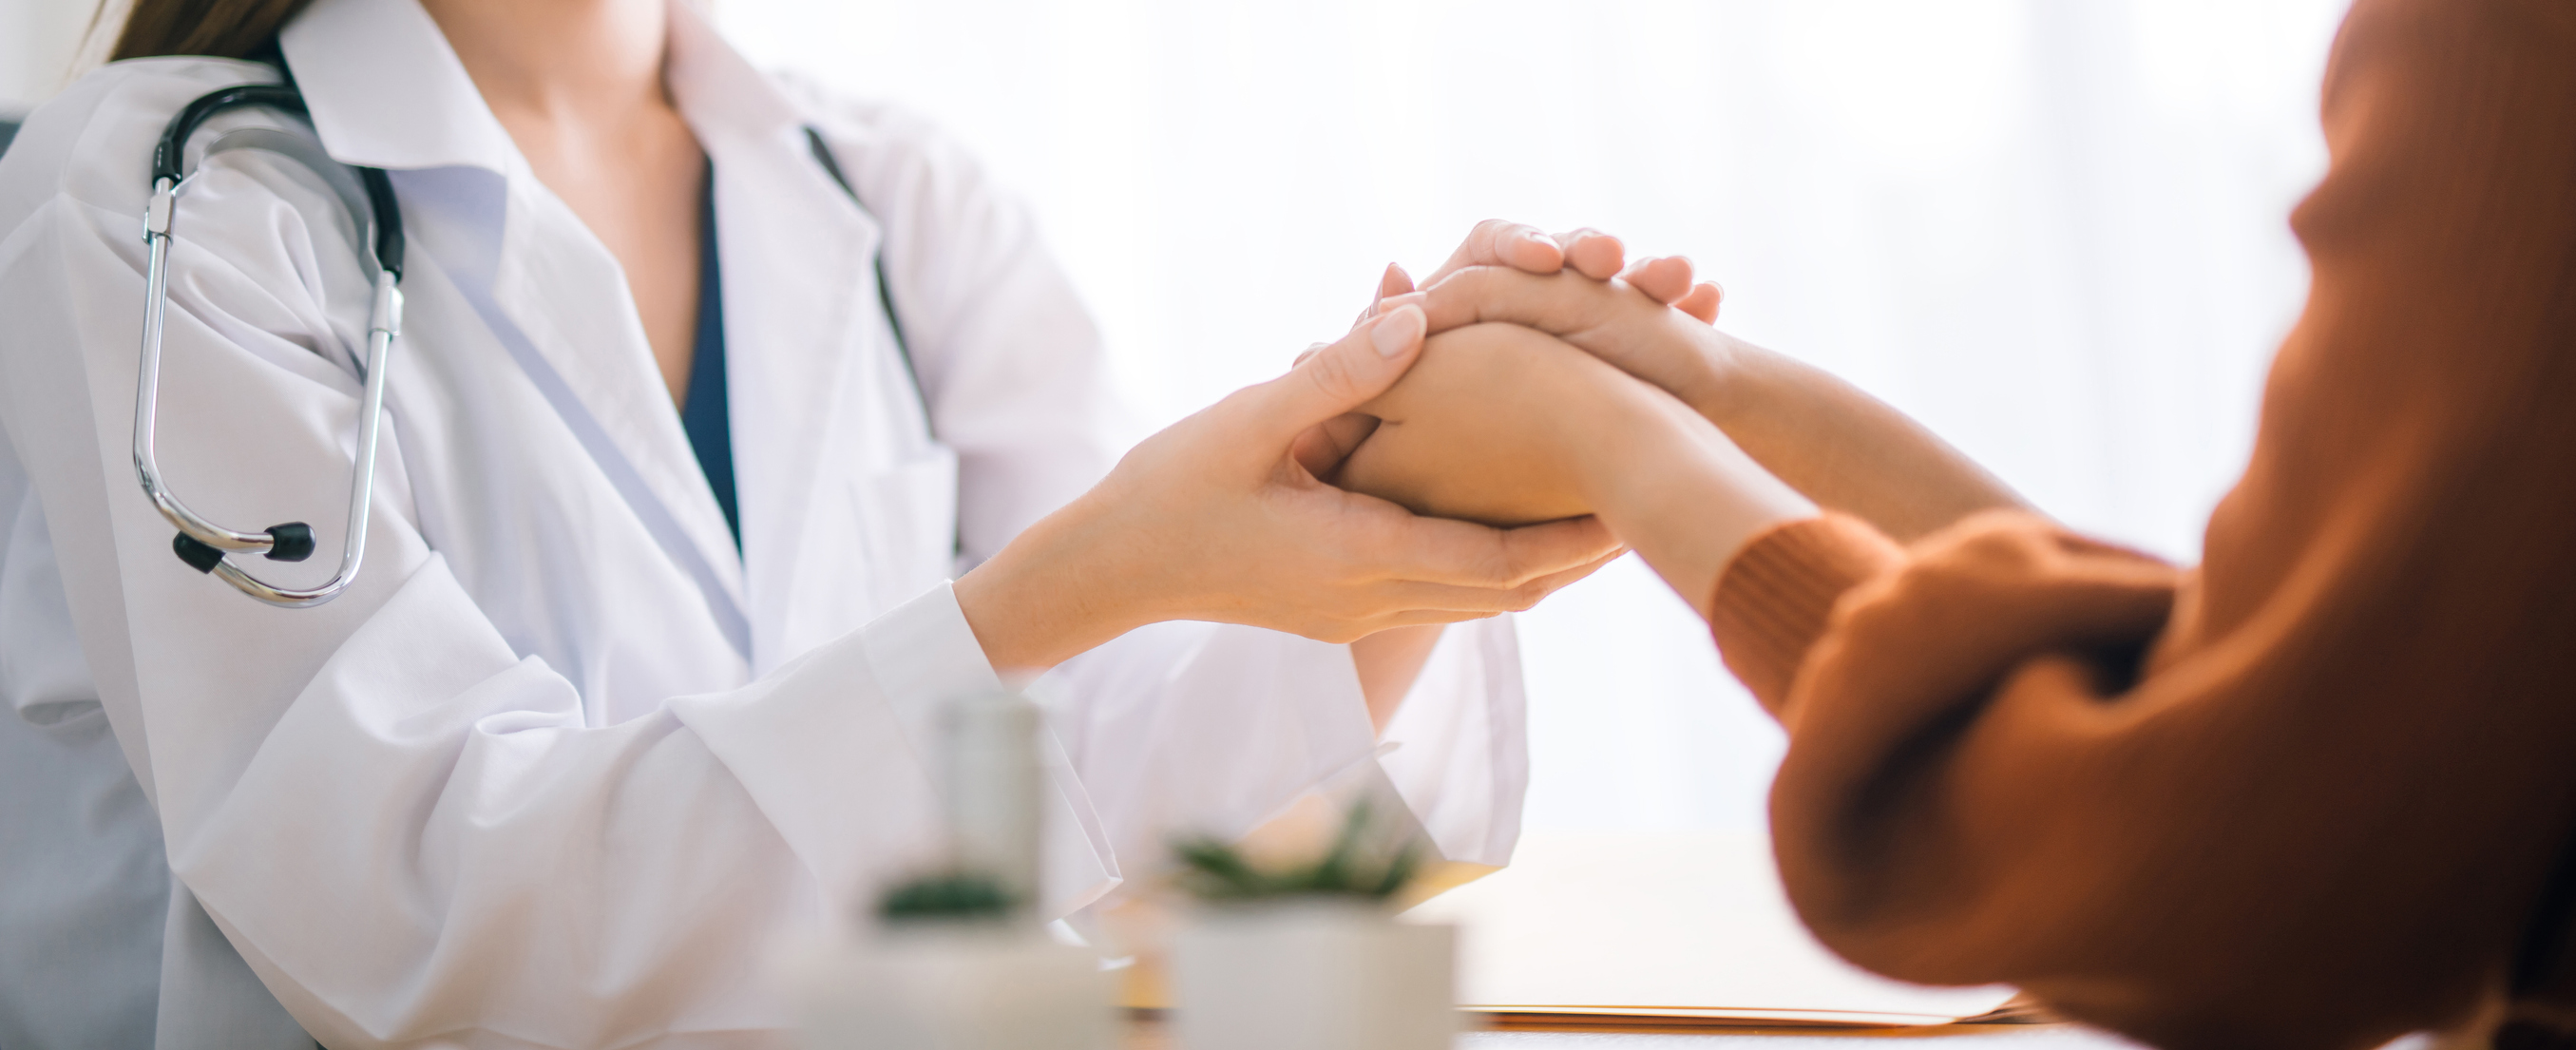 doctor holding patient's hand - memorial gift surgery